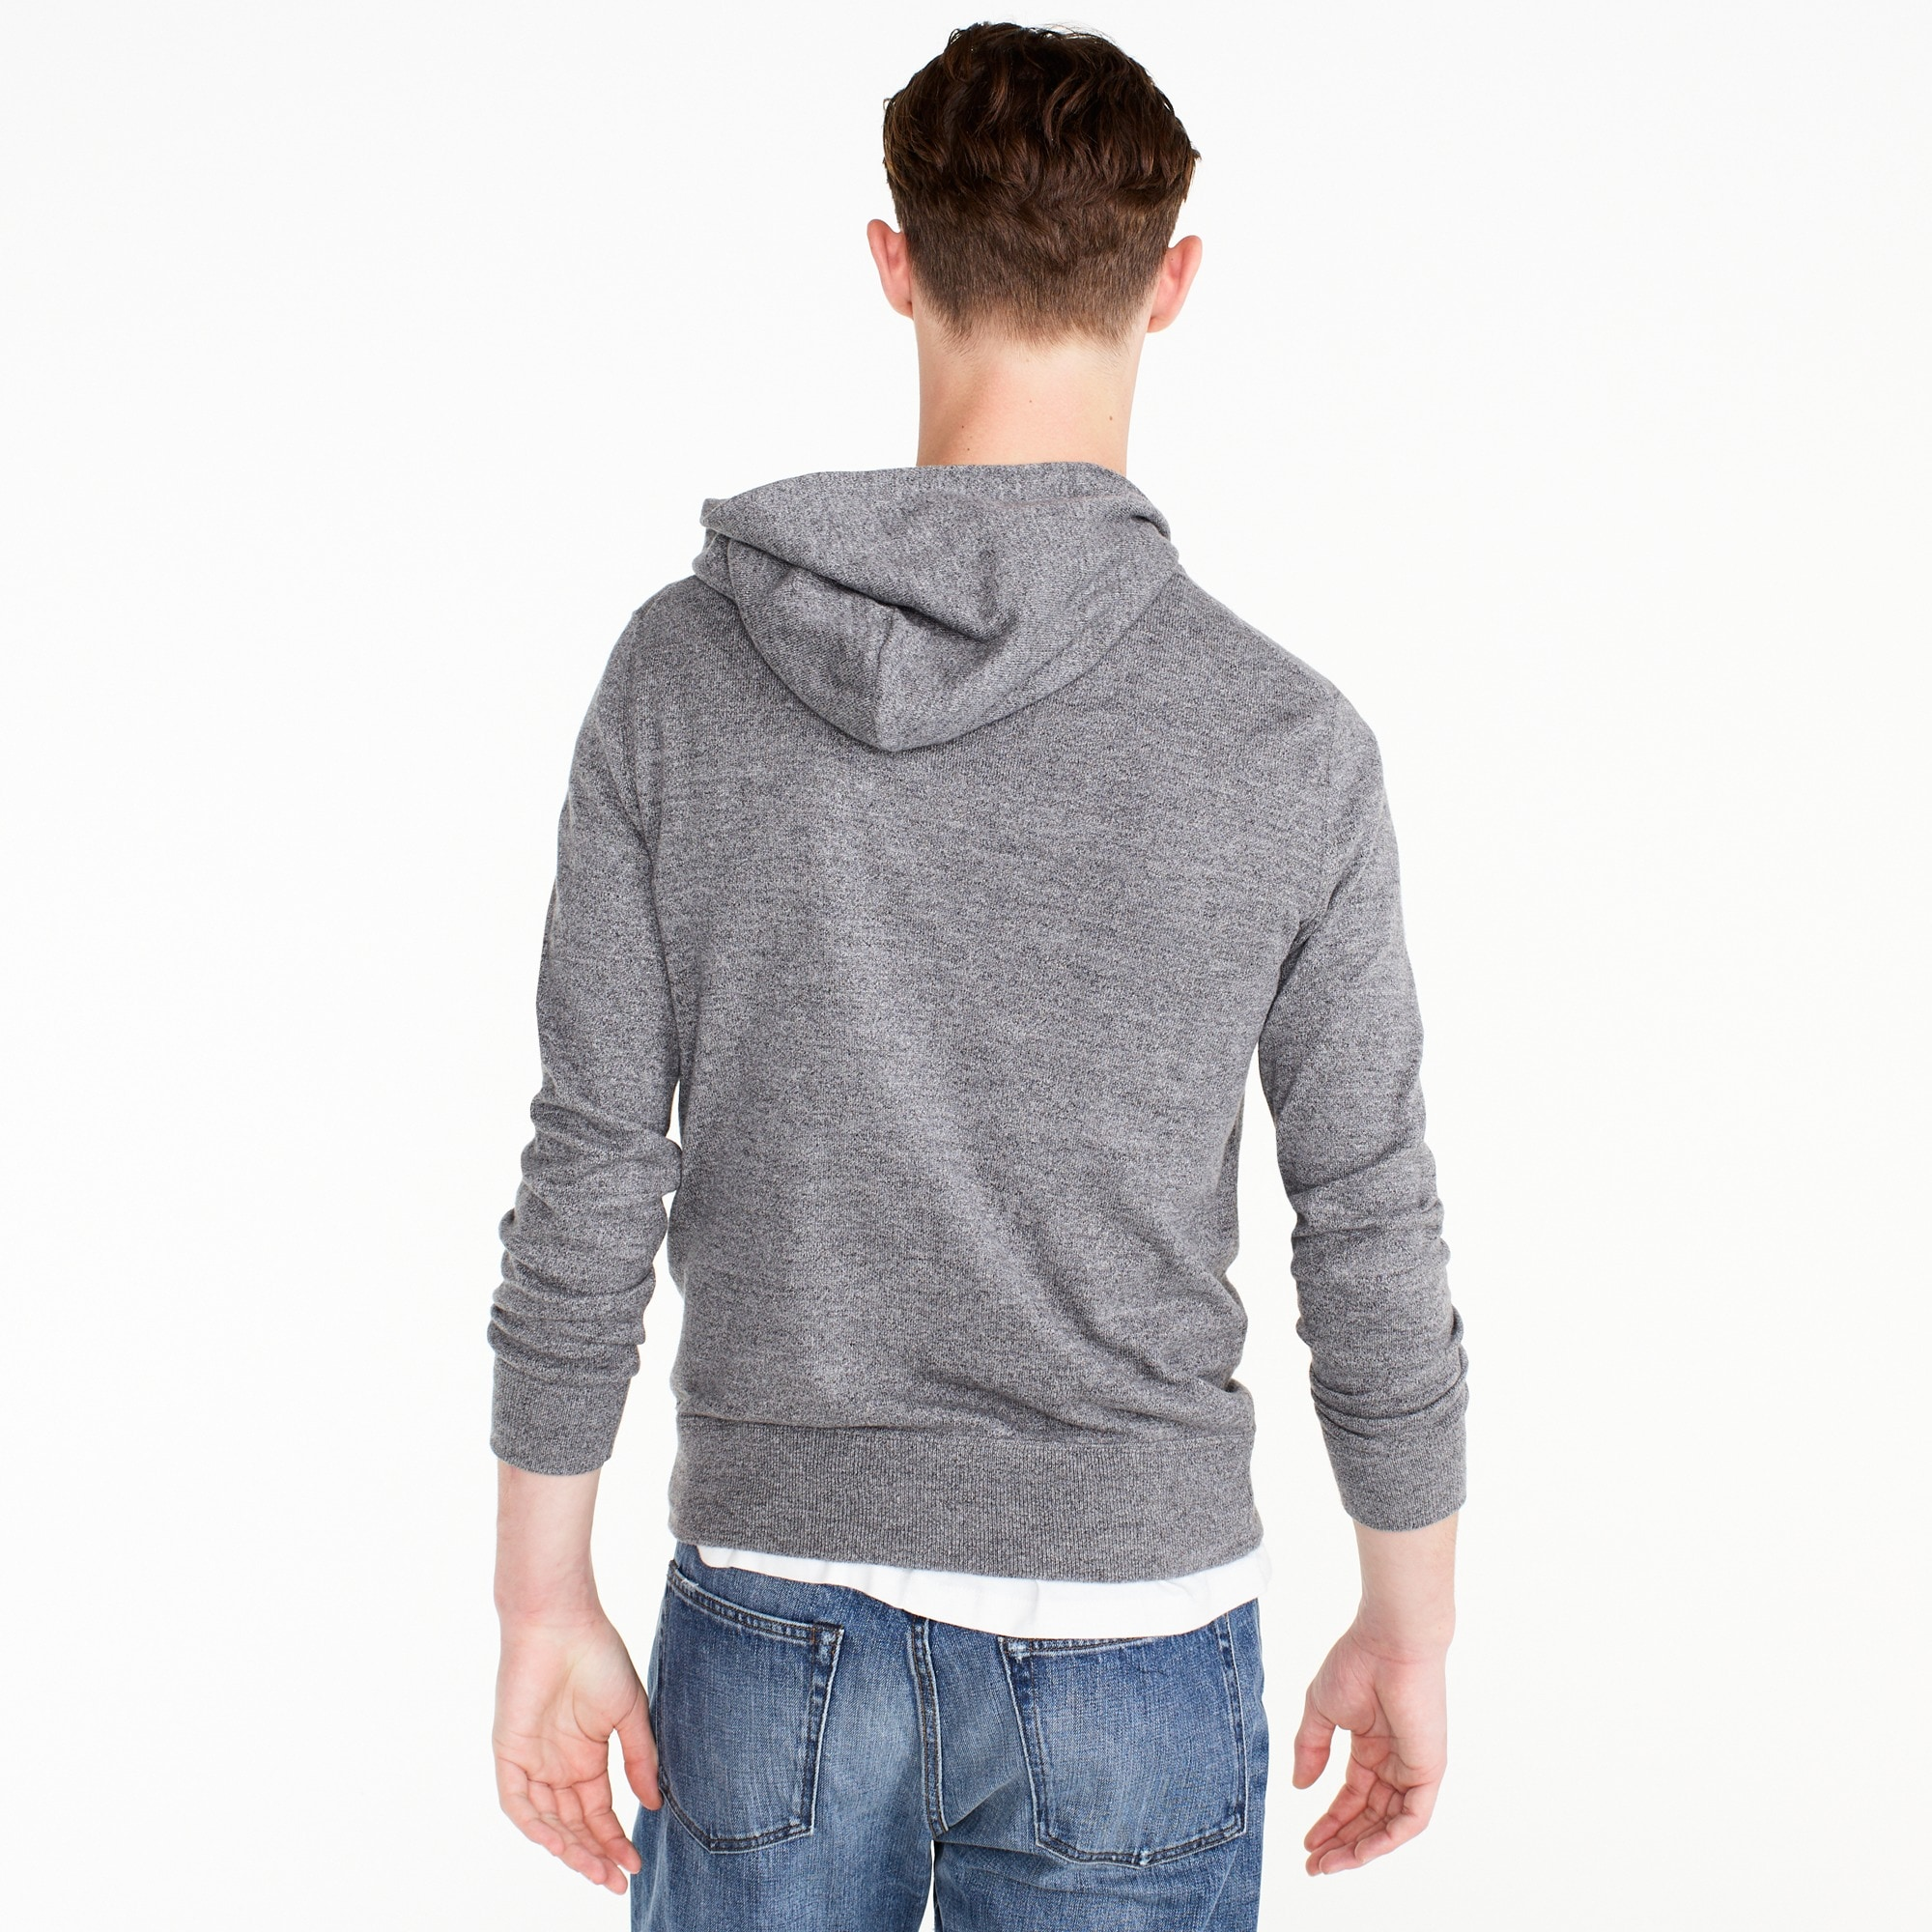 Image 2 for Cotton pullover hoodie in grey